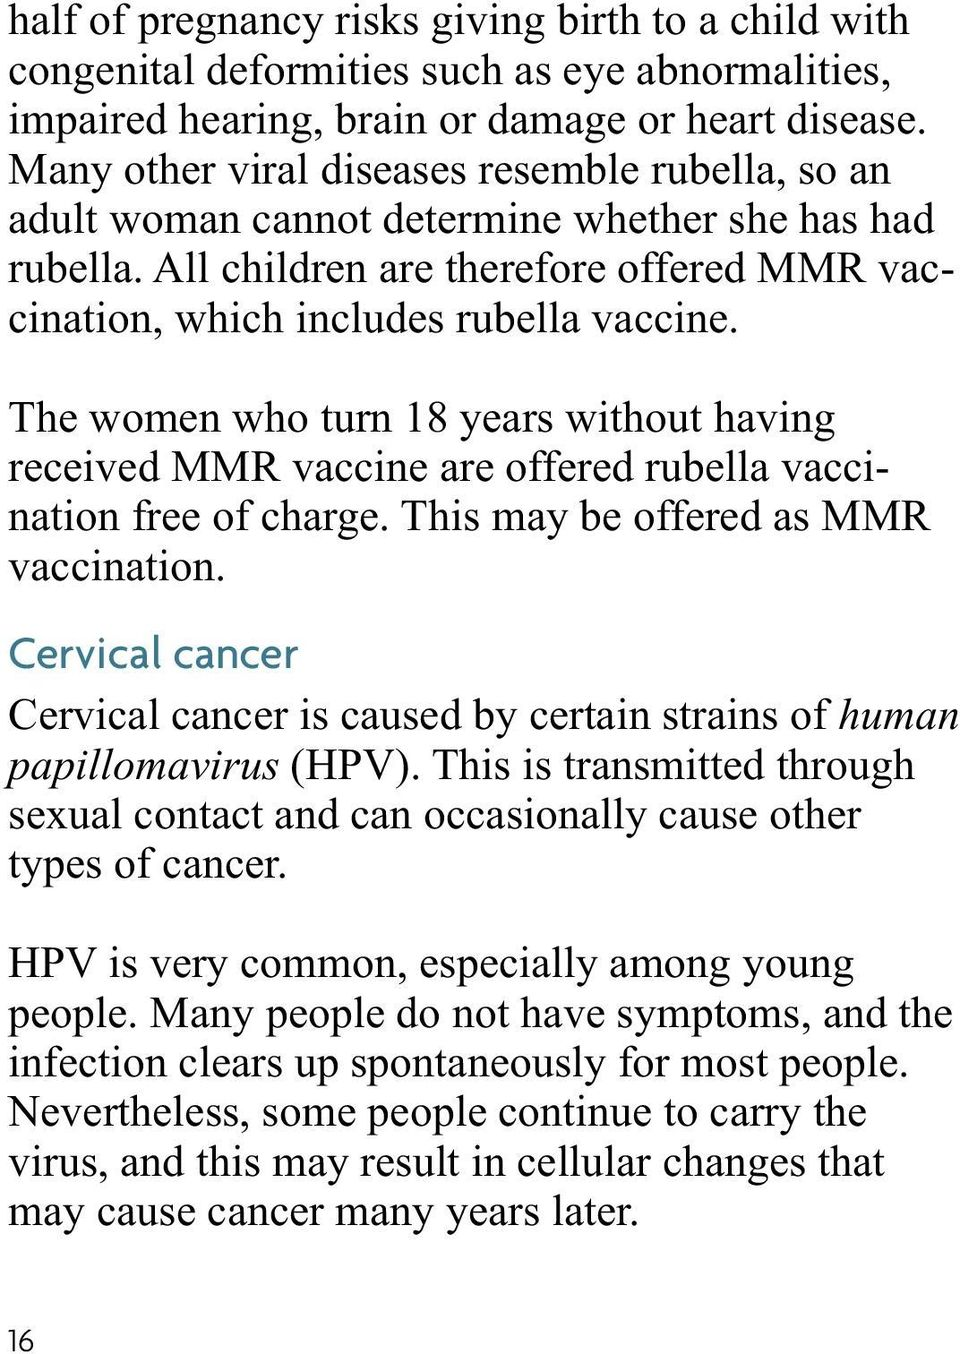 The women who turn 18 years without having received MMR vaccine are offered rubella vaccination free of charge. This may be offered as MMR vaccination.